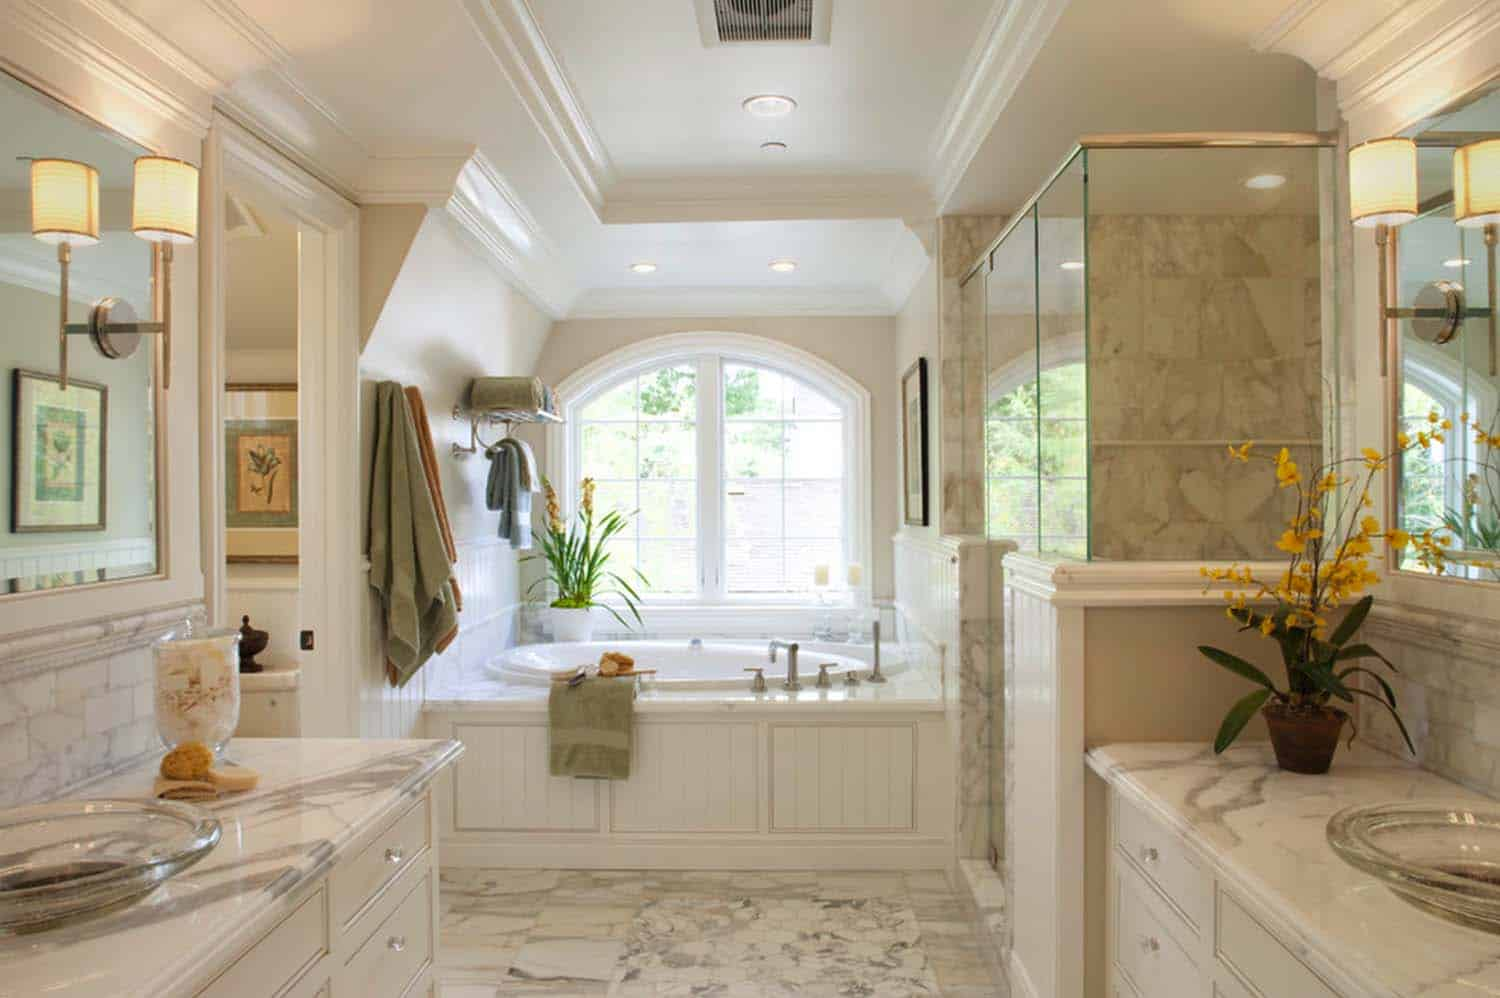 Interior Traditional Bathroom Designs 53 most fabulous traditional style bathroom designs ever design ideas 40 1 kindesign